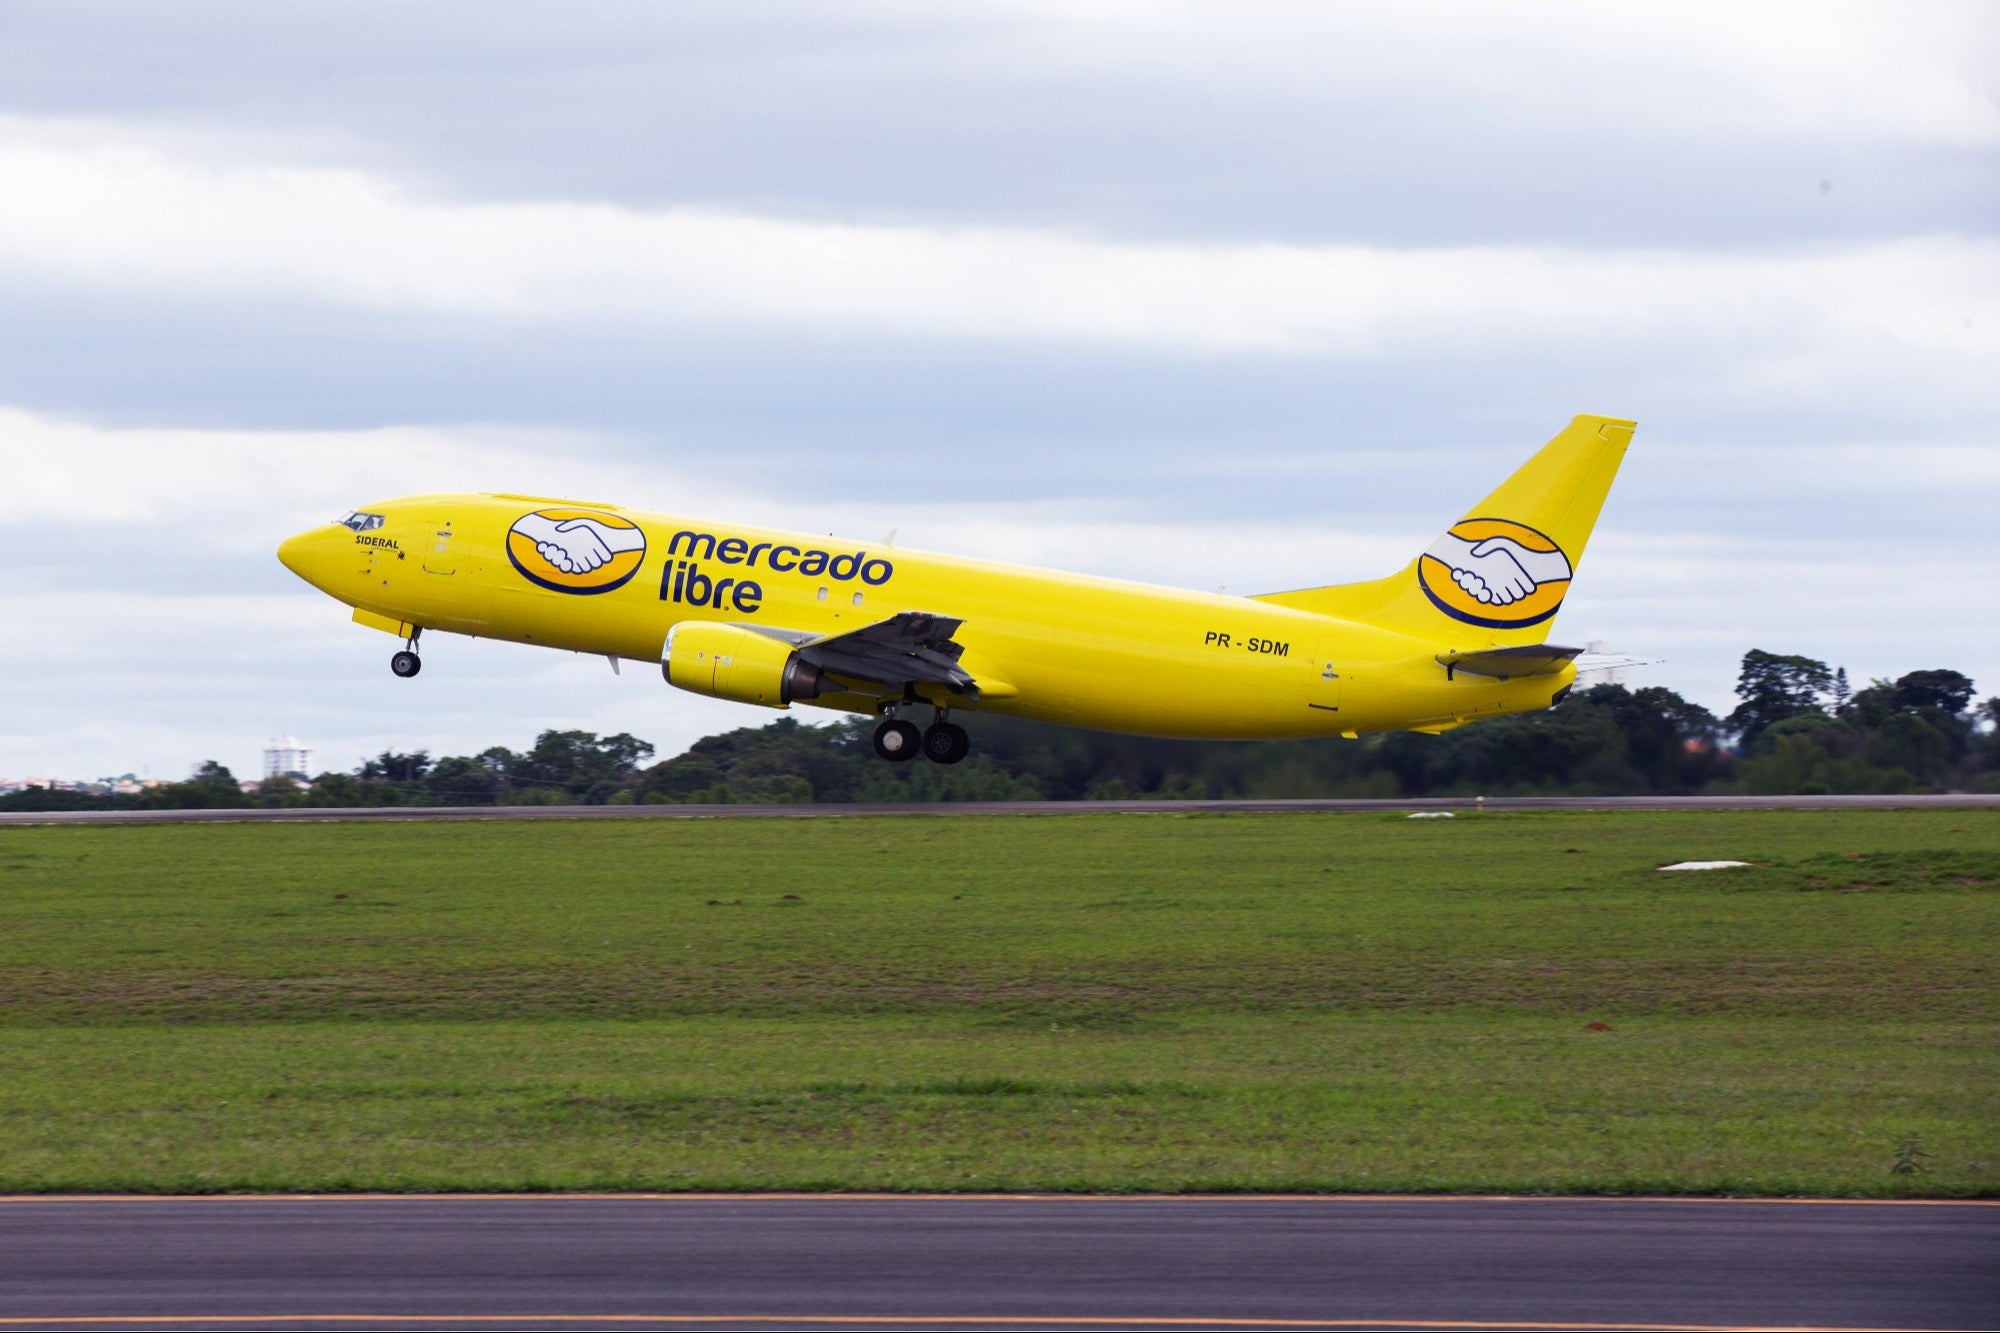 With these planes Mercado Libre will deliver packages in less than 24 hours